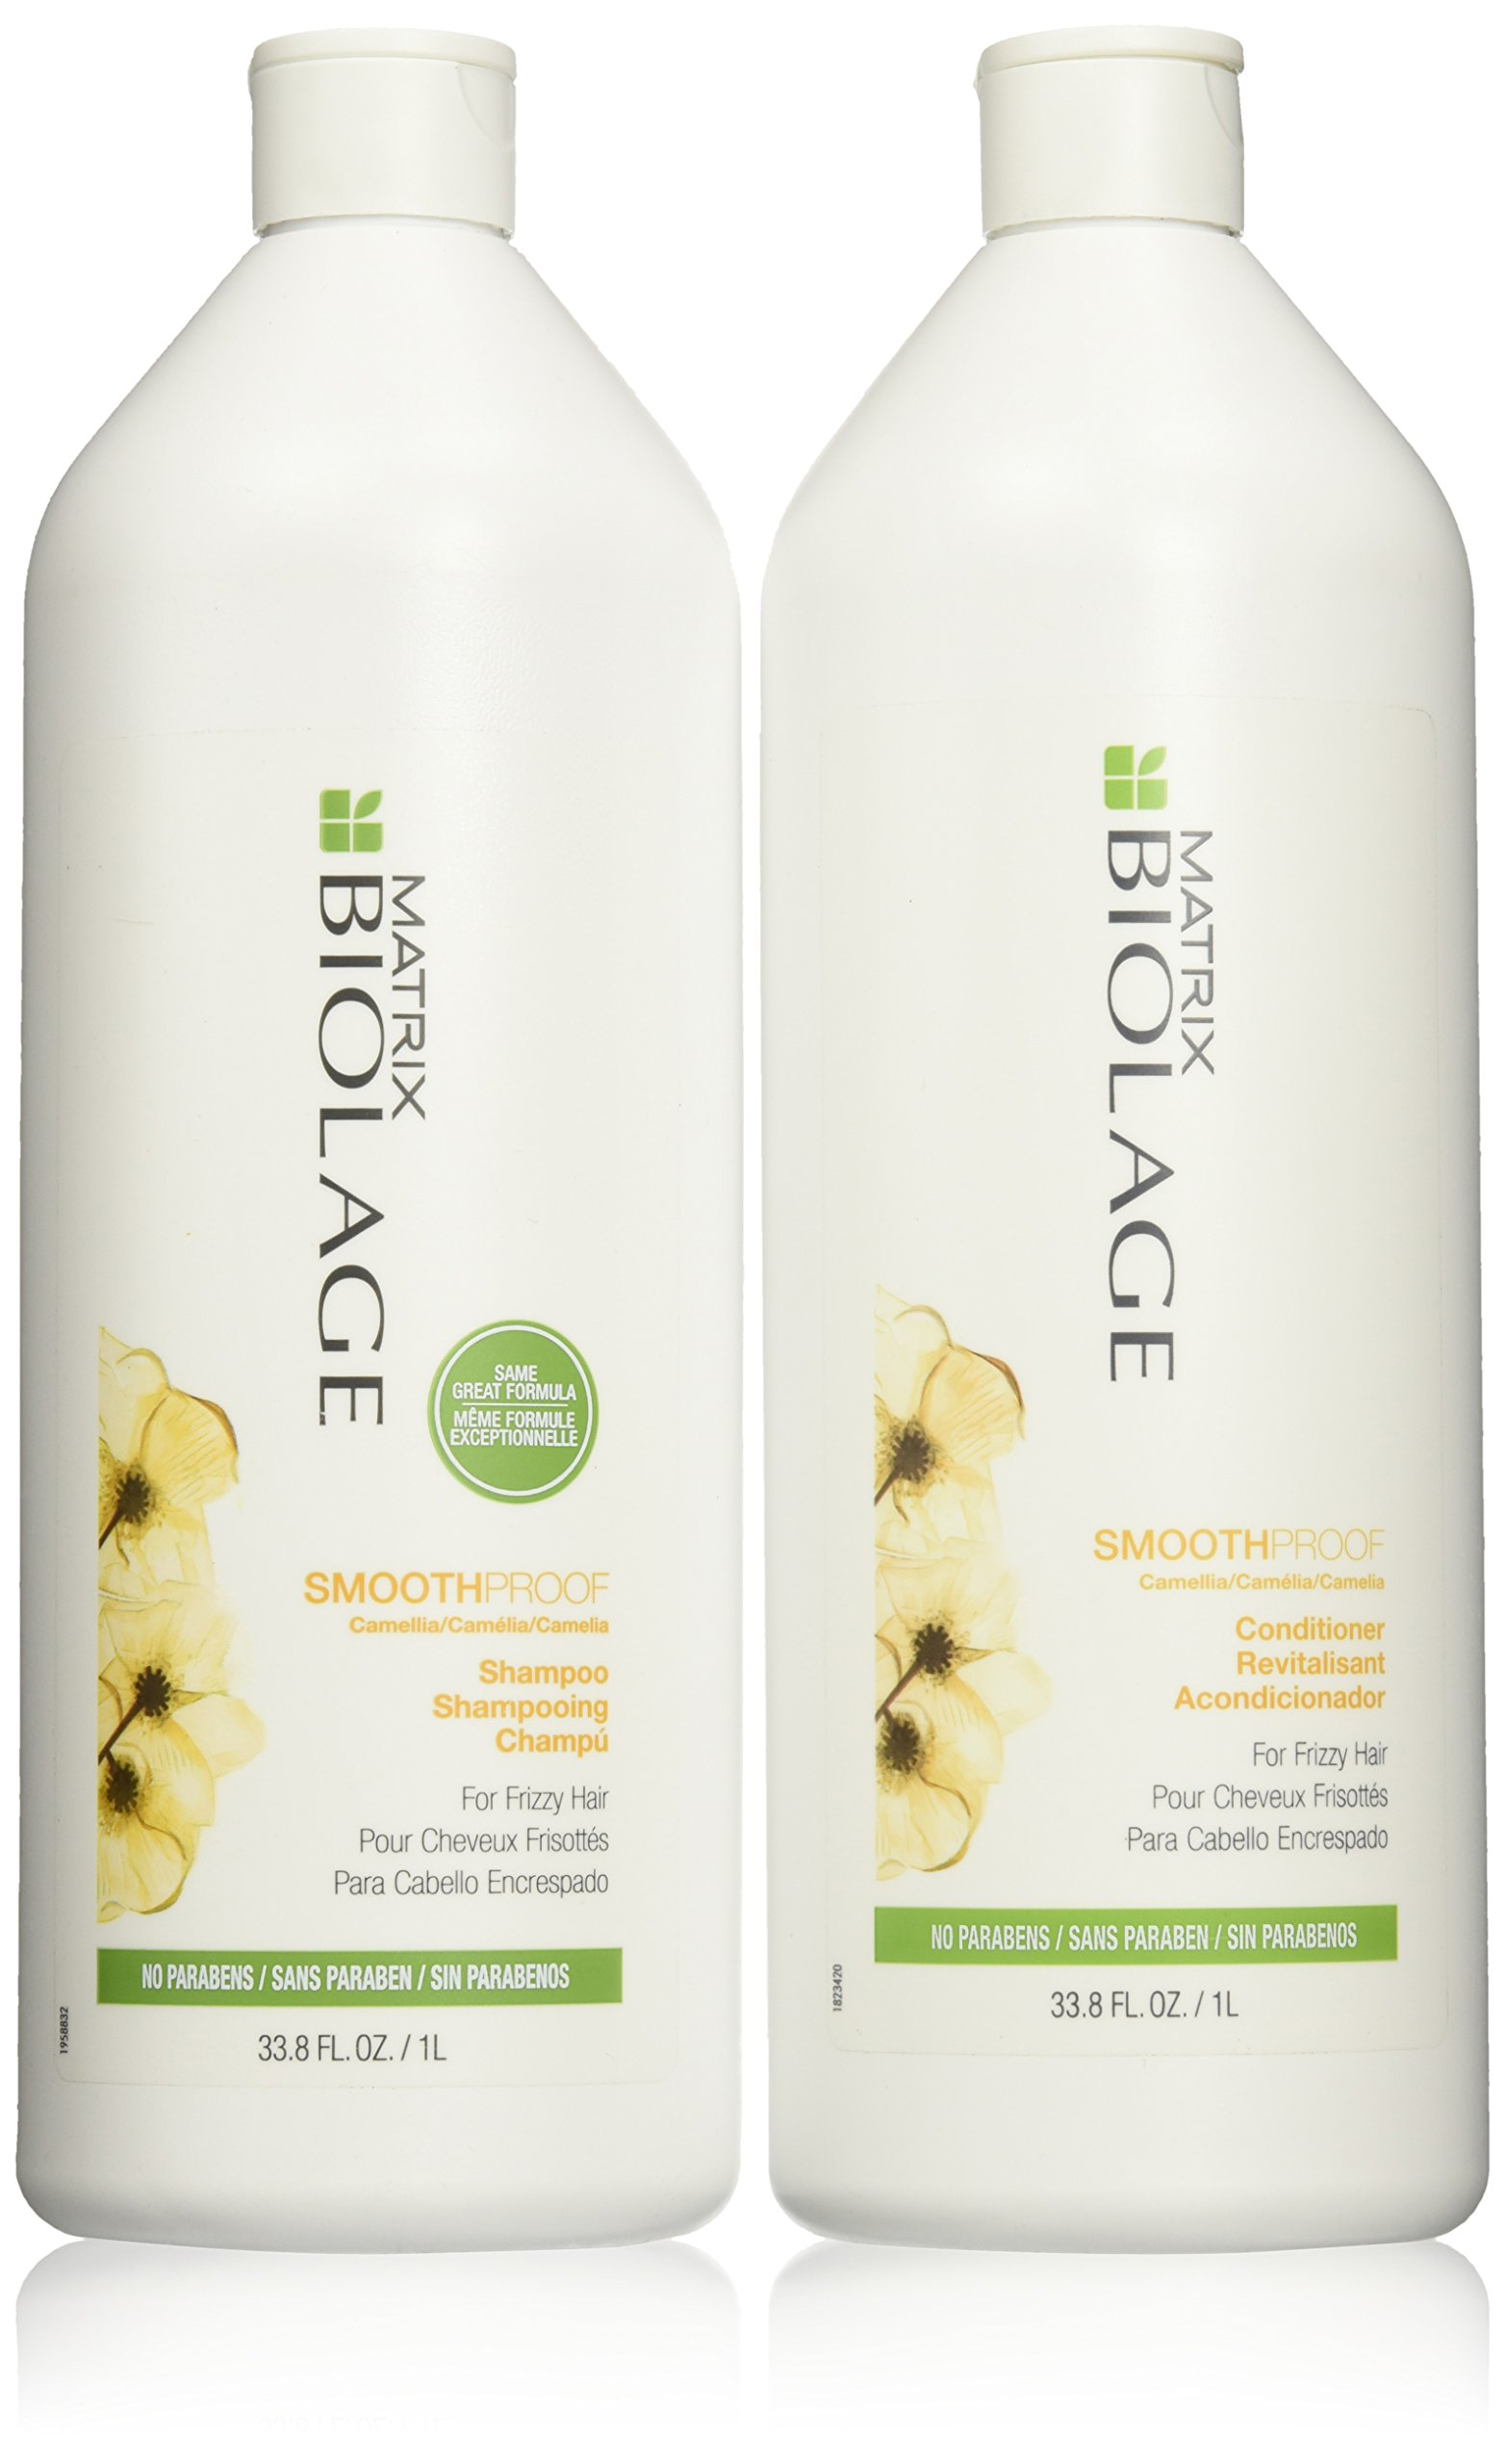 Matrix Biolage Smoothproof Shampoo & Conditioner Liter Duo 33.8 fl oz each by MATRIX